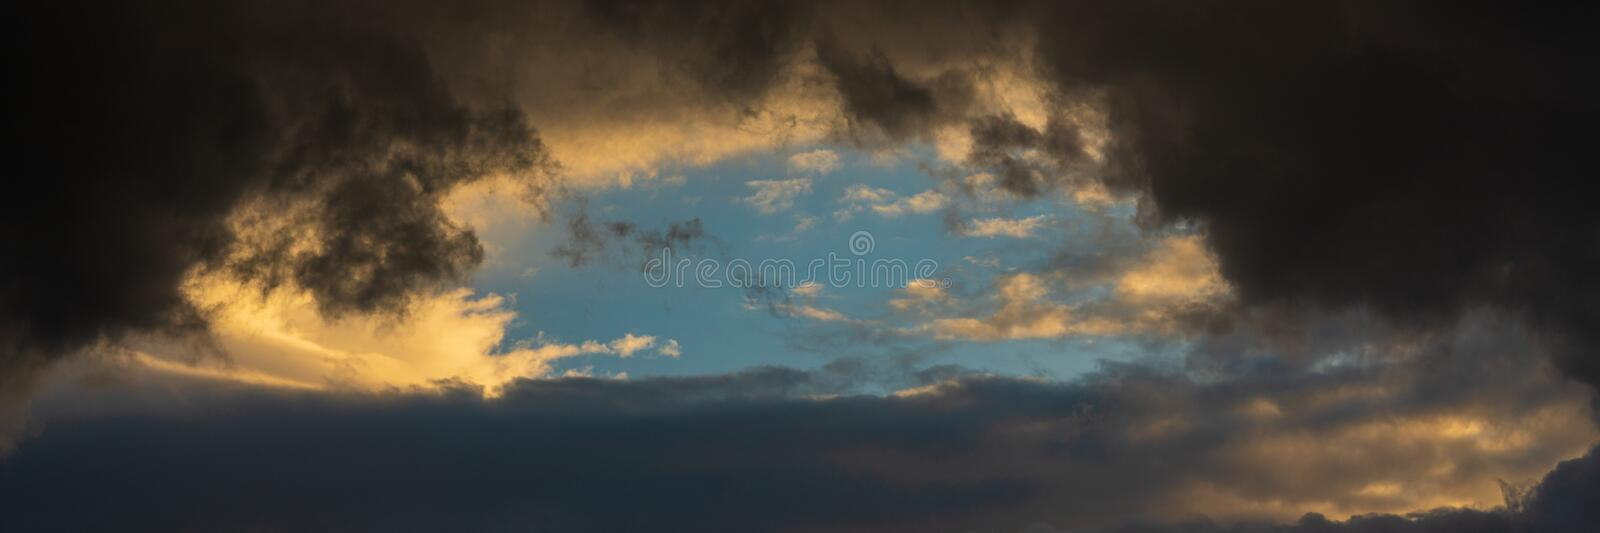 Panorama dramatic clouds illuminated rising of sun floating in blue sky. Natural weather, meteorology background royalty free stock photos